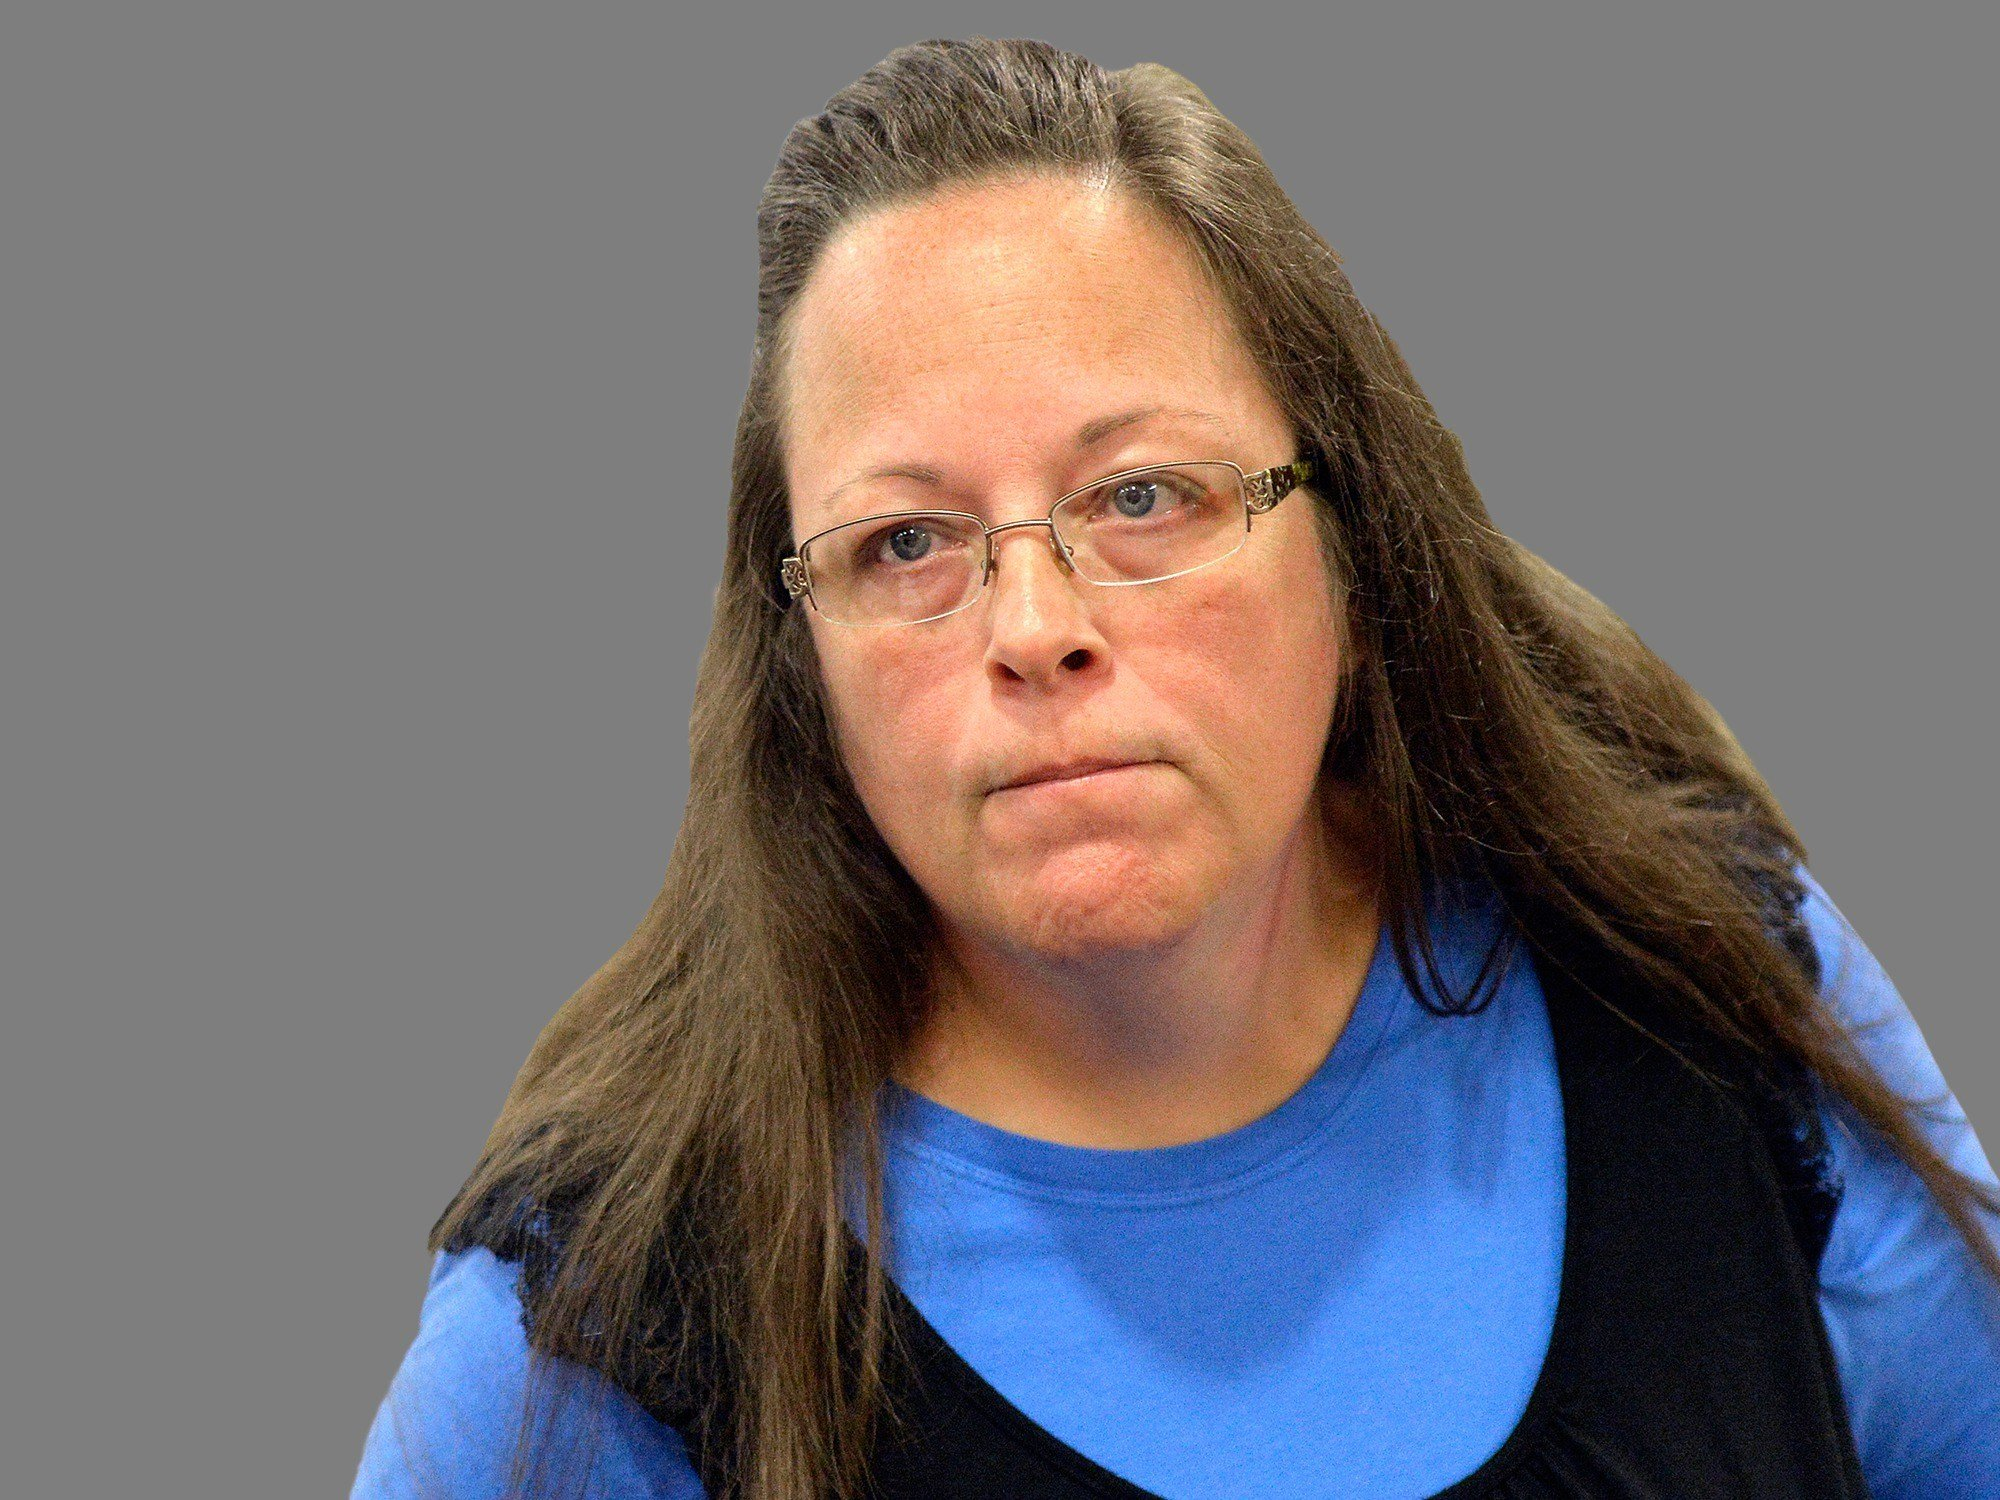 Kim Davis costs Kentucky taxpayers over $220K for defying marriage law